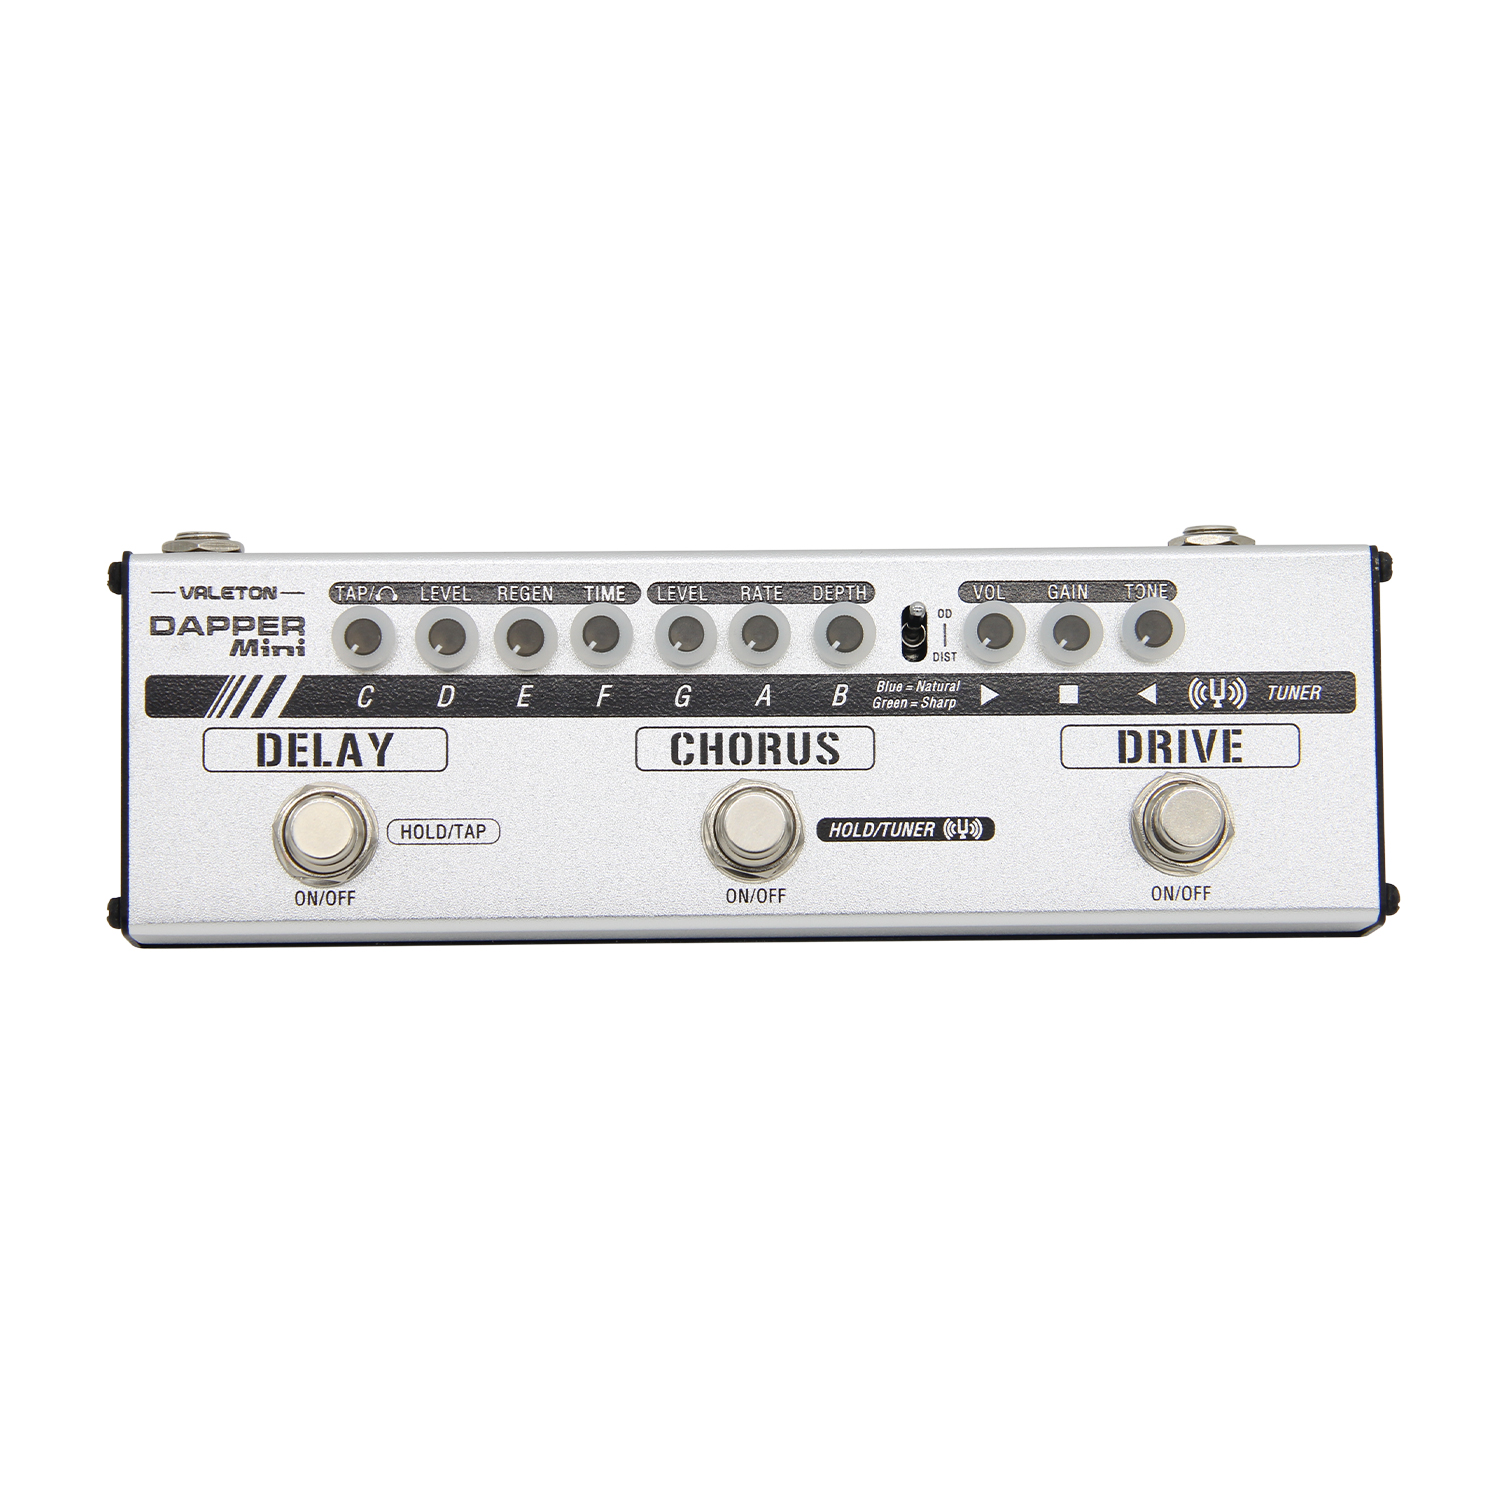 Valeton MES 1 Dapper Mini Guitar Effect Pedal All In One Effects Strip with Earphones Jack Tuner Drive Chorus Delay Effects